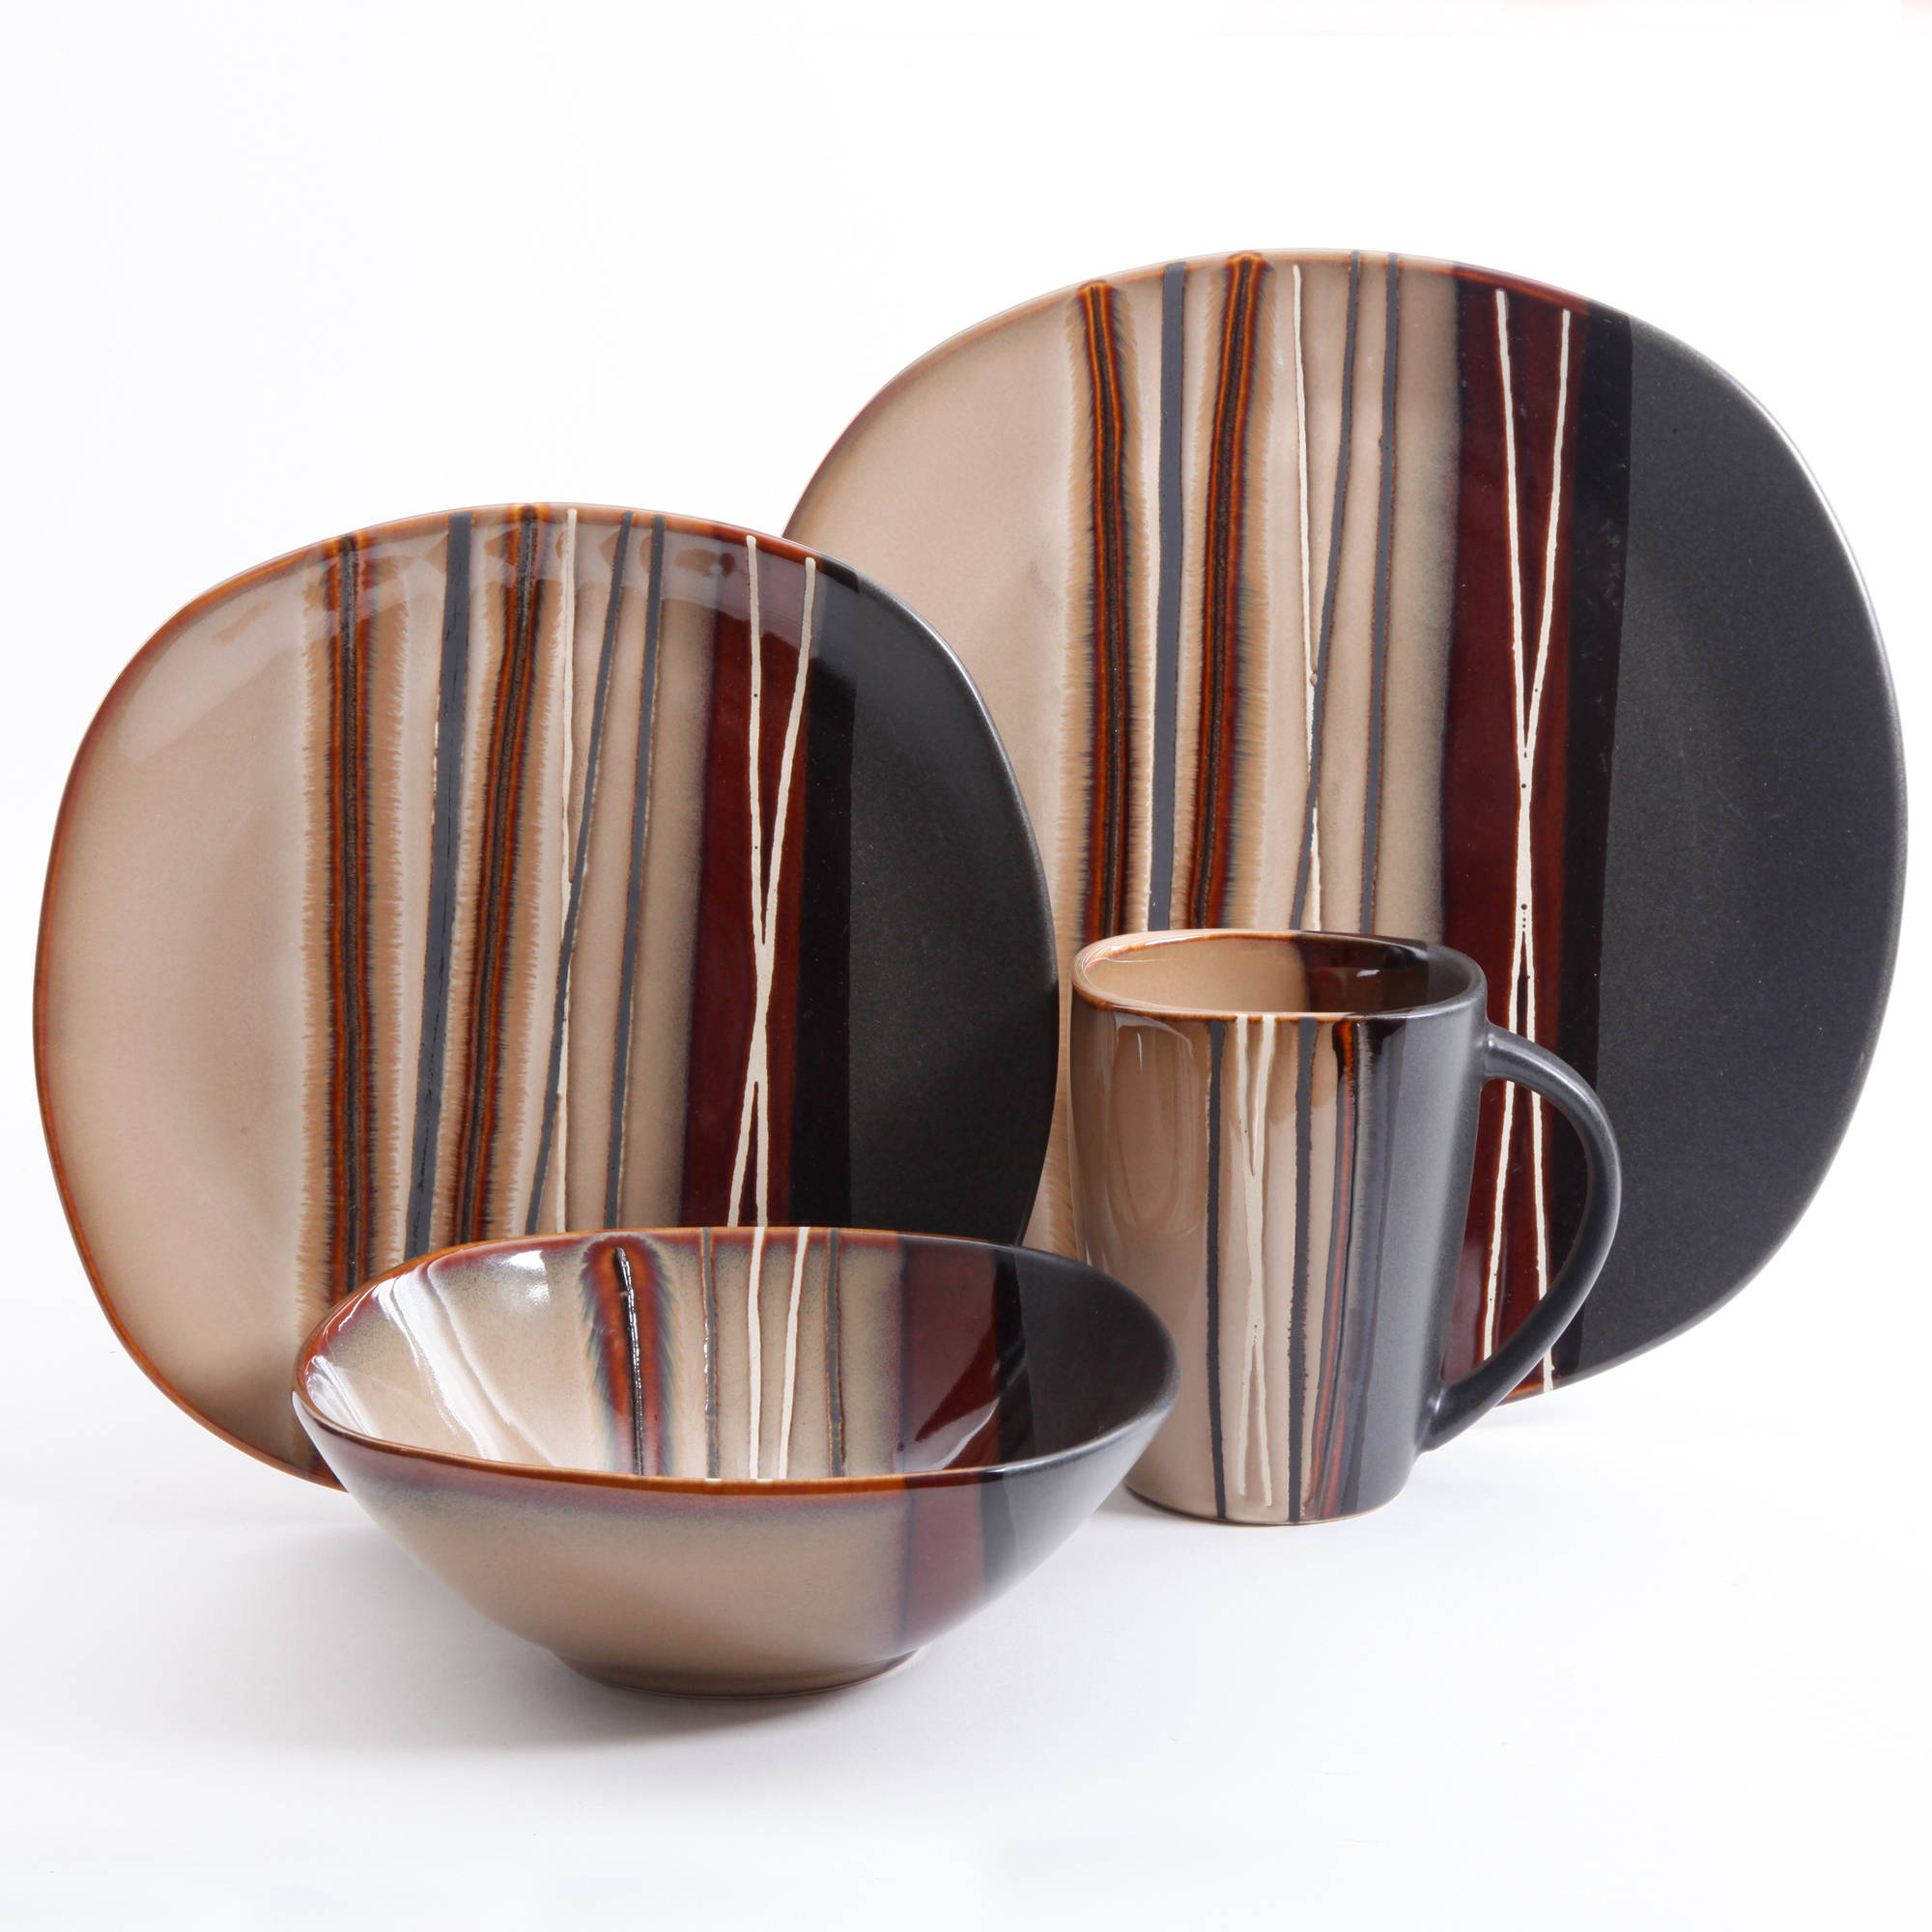 Modern Kitchen Plates: Better Homes & Gardens Bazaar Dinnerware, Brown, Set Of 16